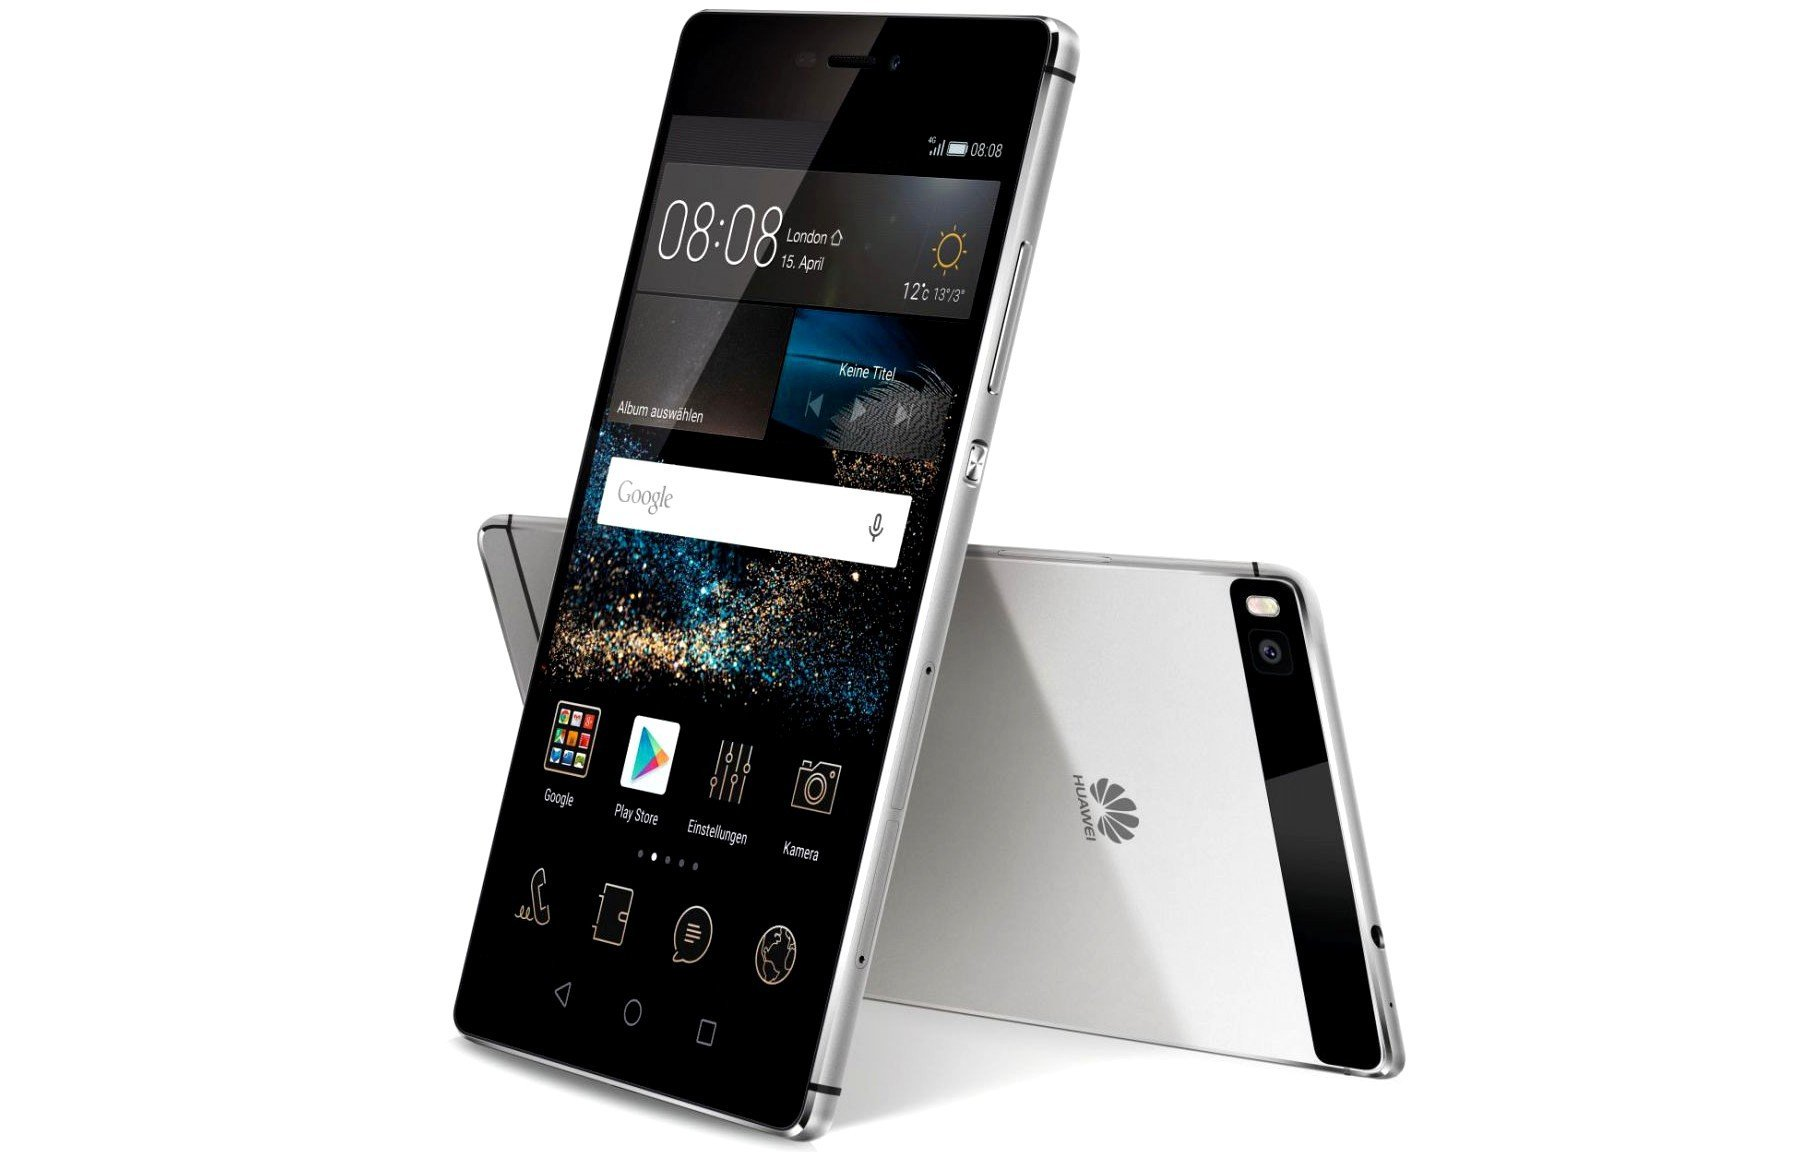 Huawei P9 CES Pc-Tablet Media